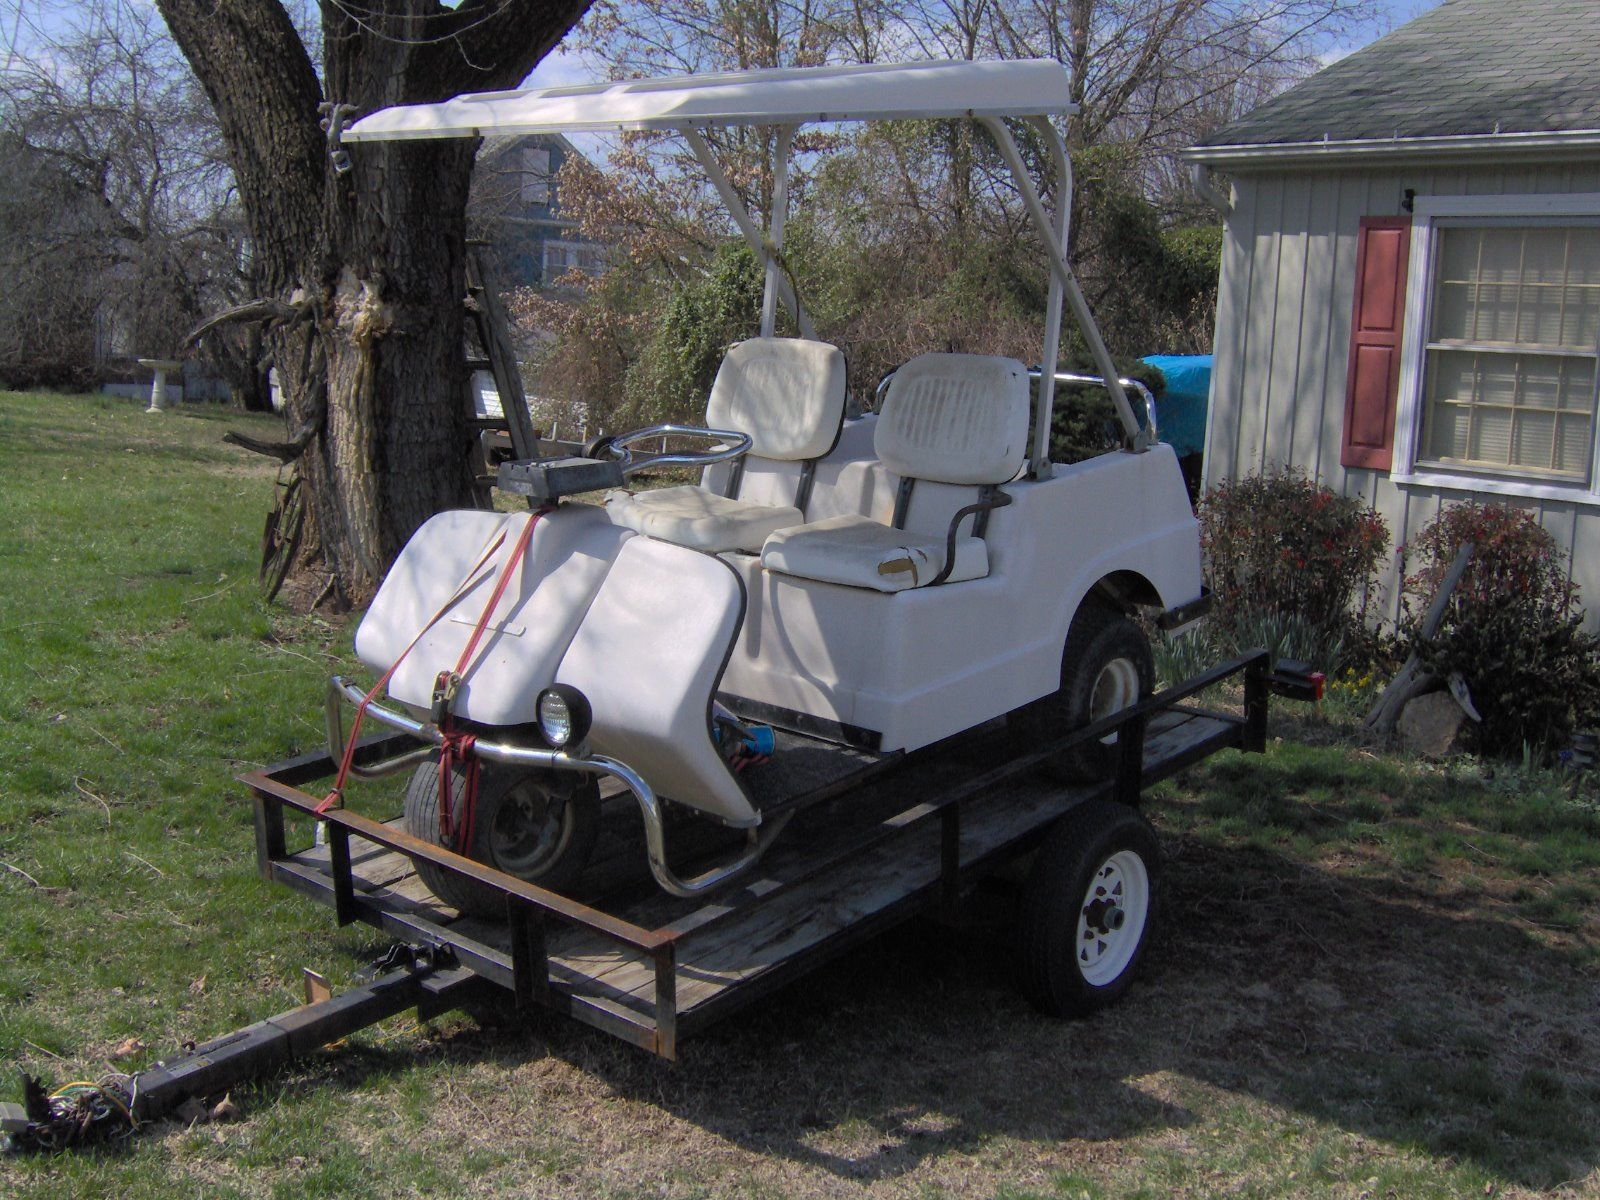 Harley-Davidson amf golf cart 1981 for sale